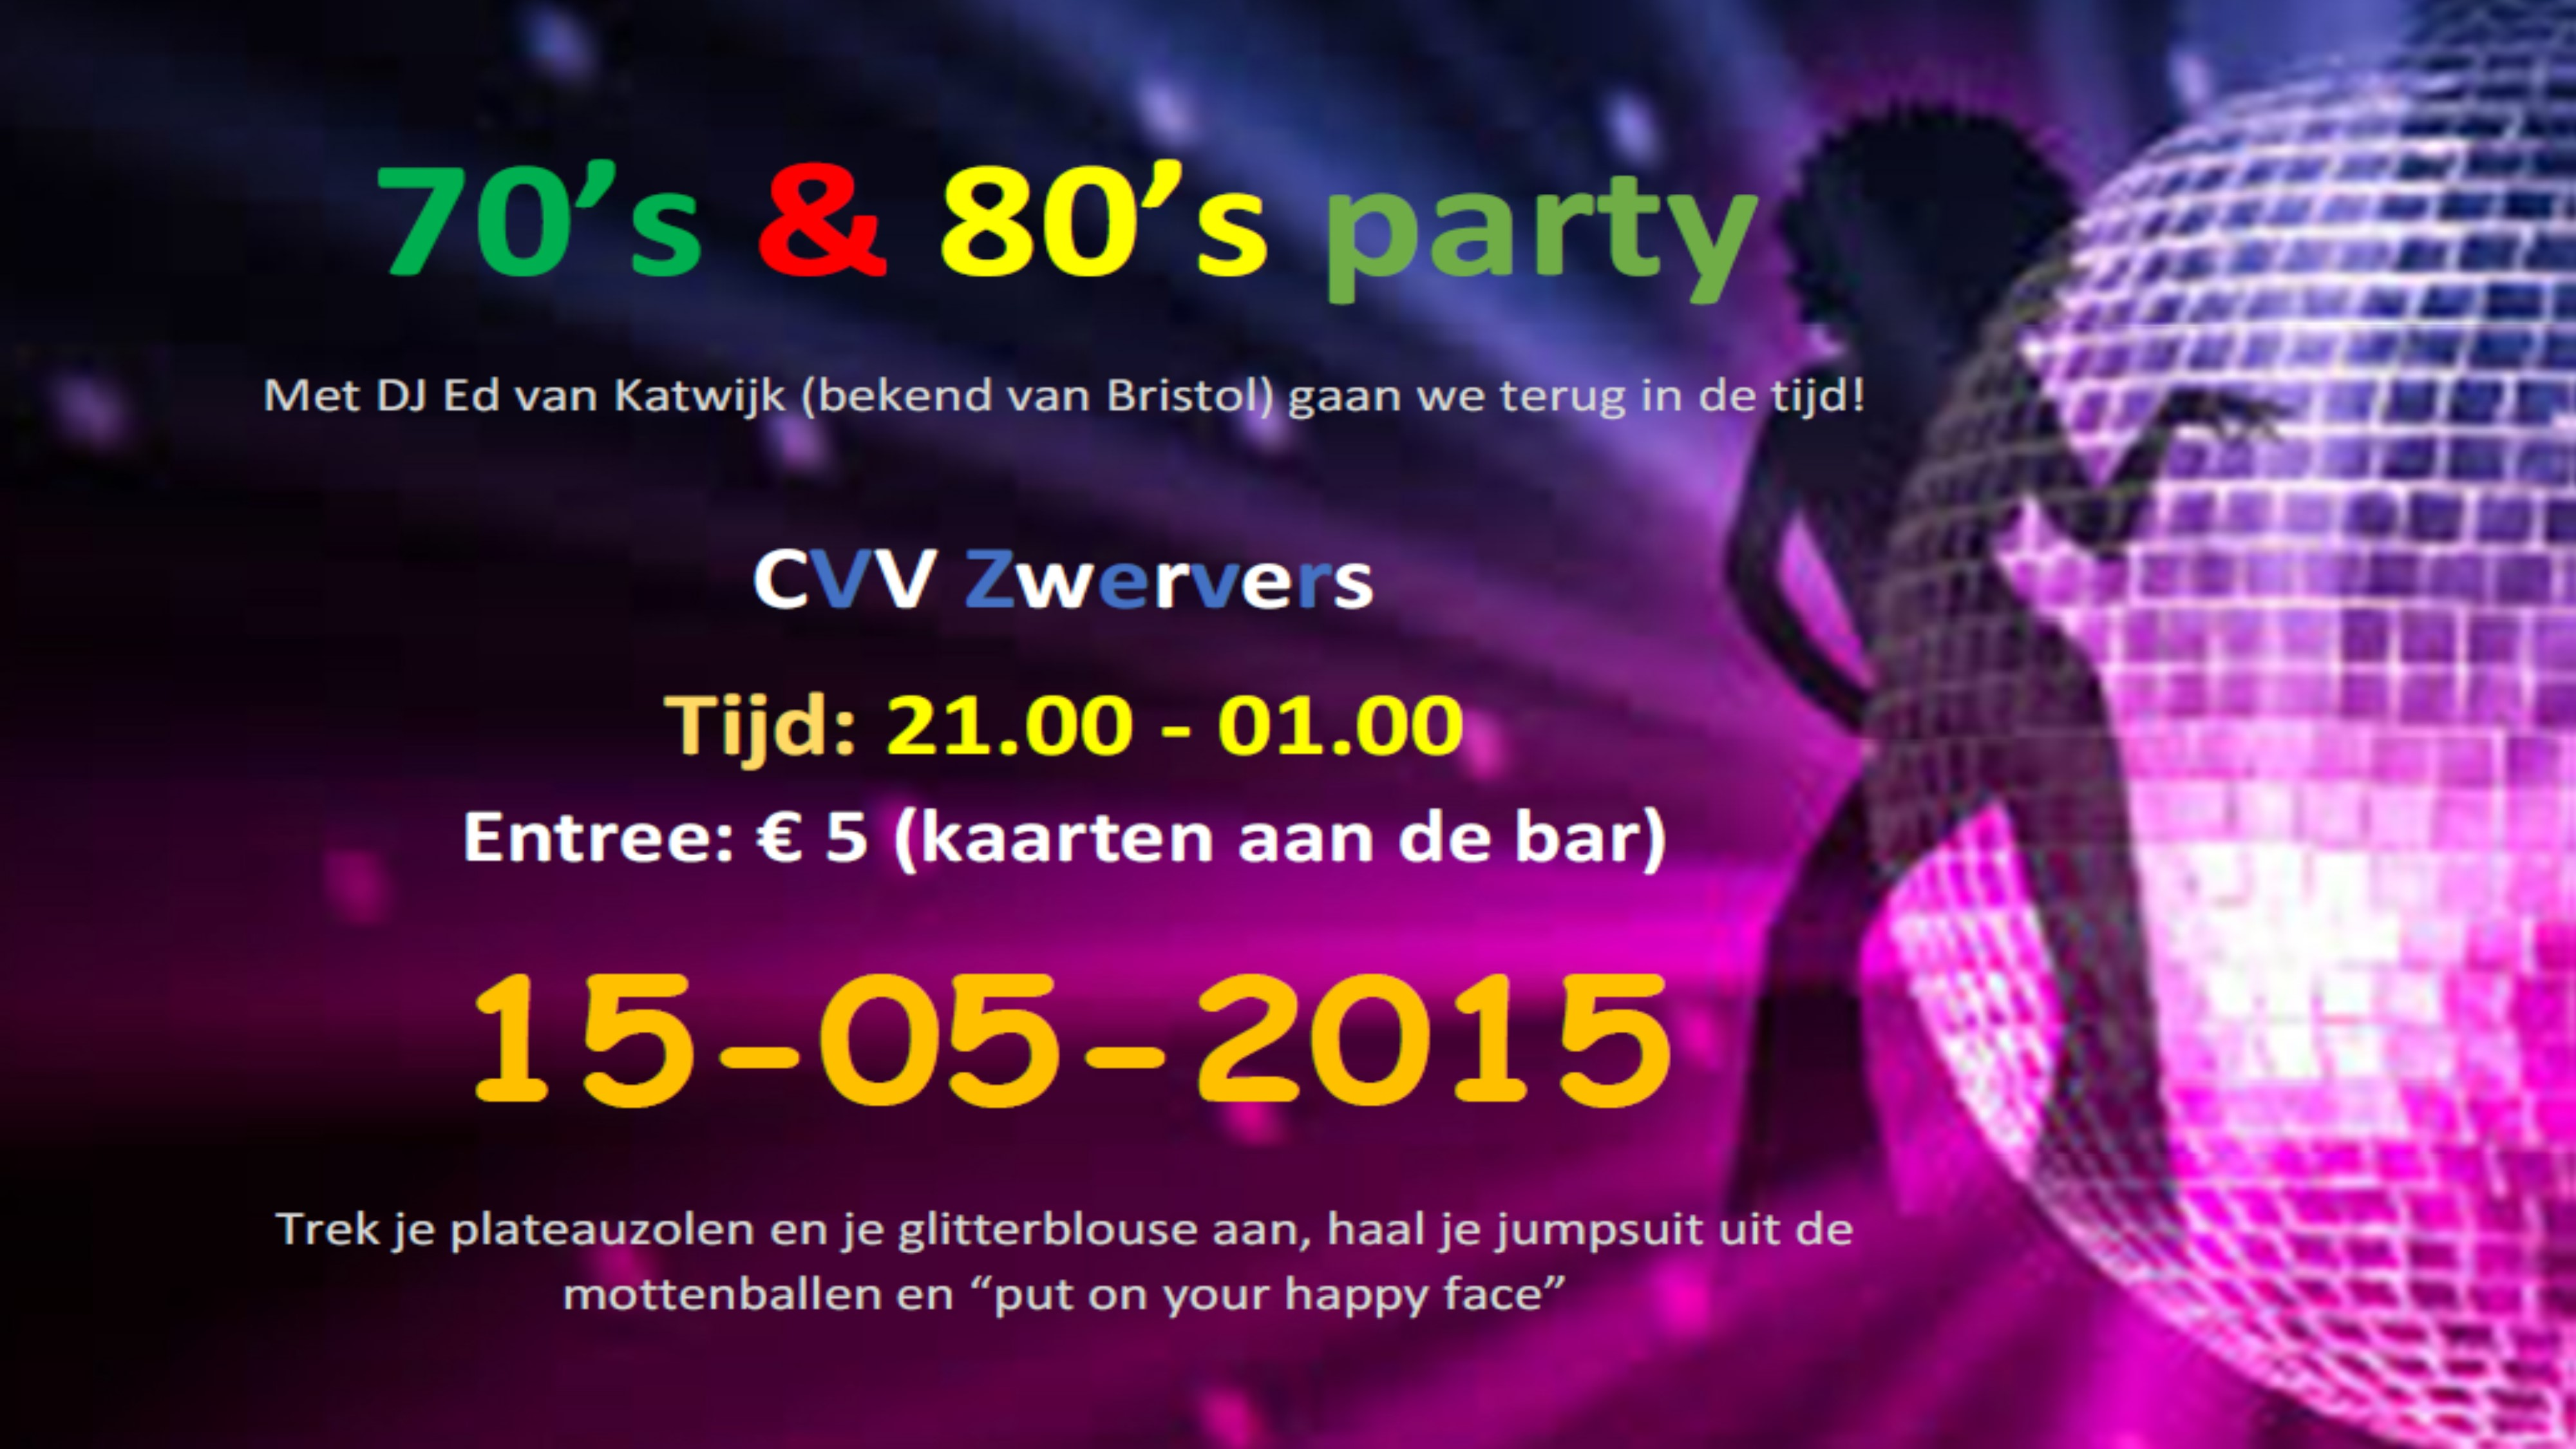 party7080